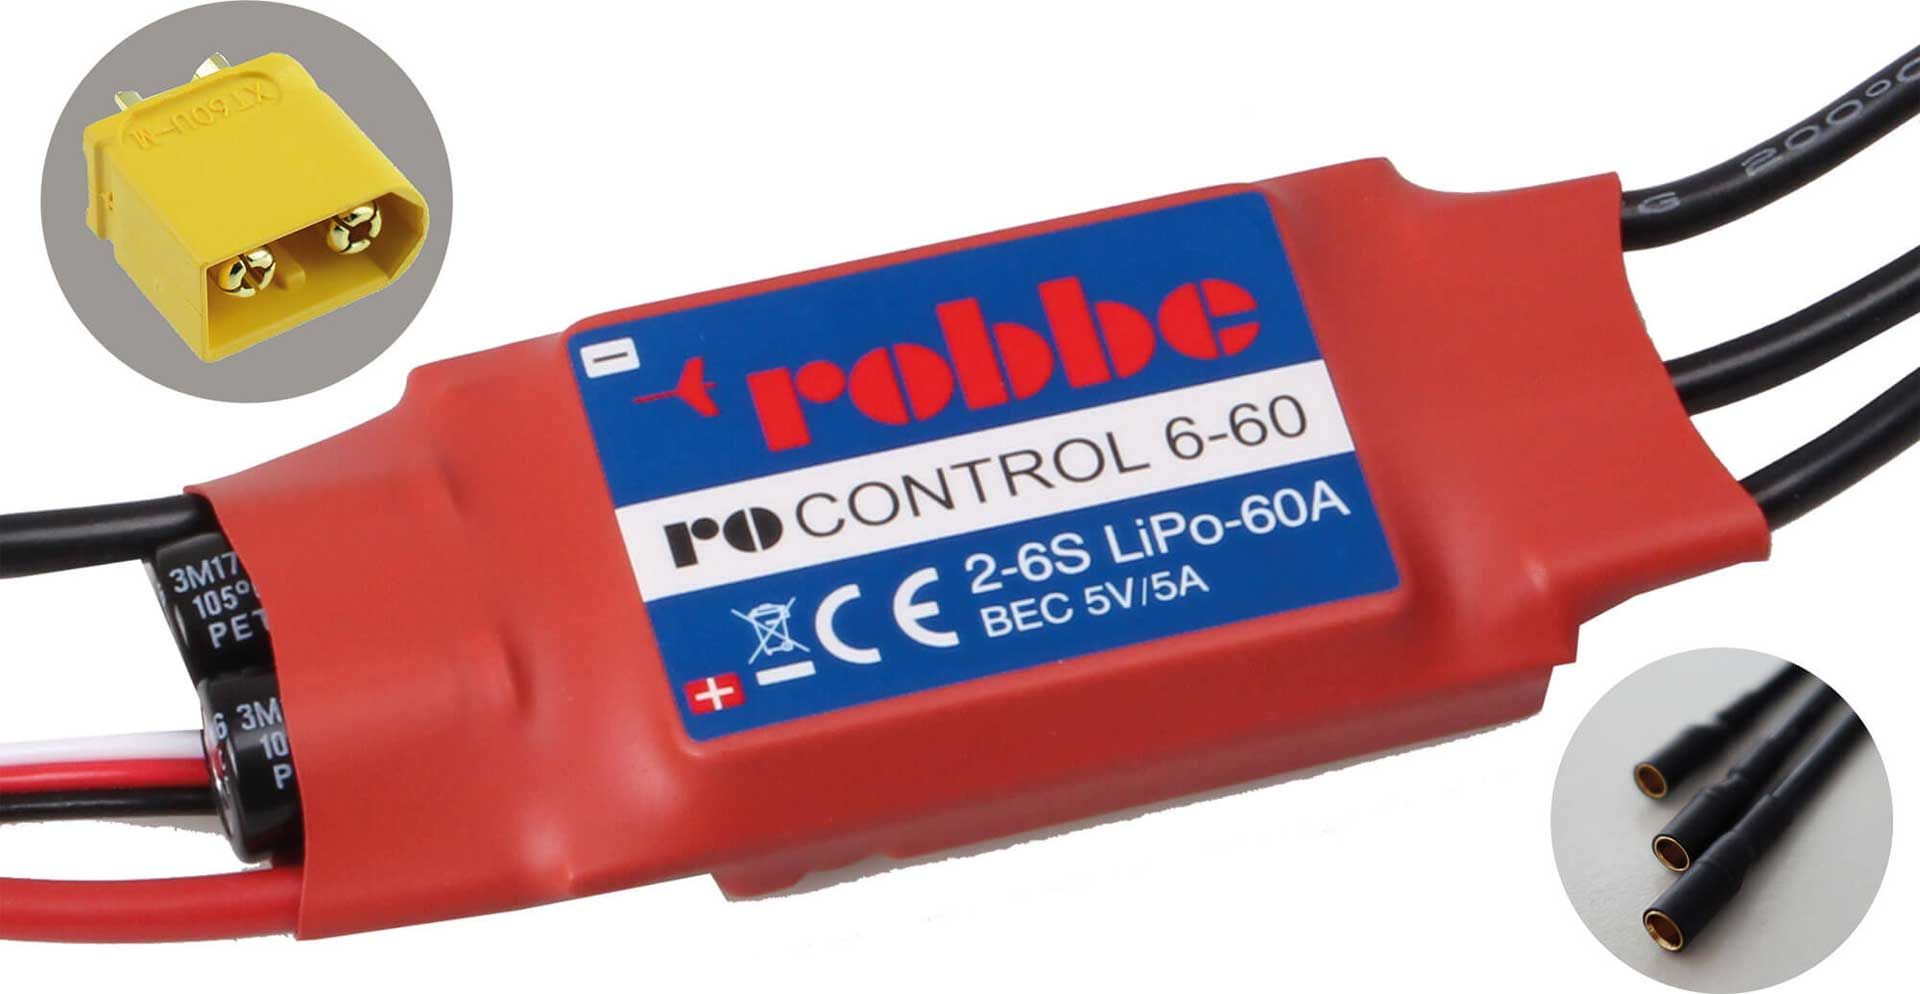 ROBBE RO-CONTROL 6-60 2-6S -60(80)A BL CONTROLLER 5V/5A SWITCH-BEC